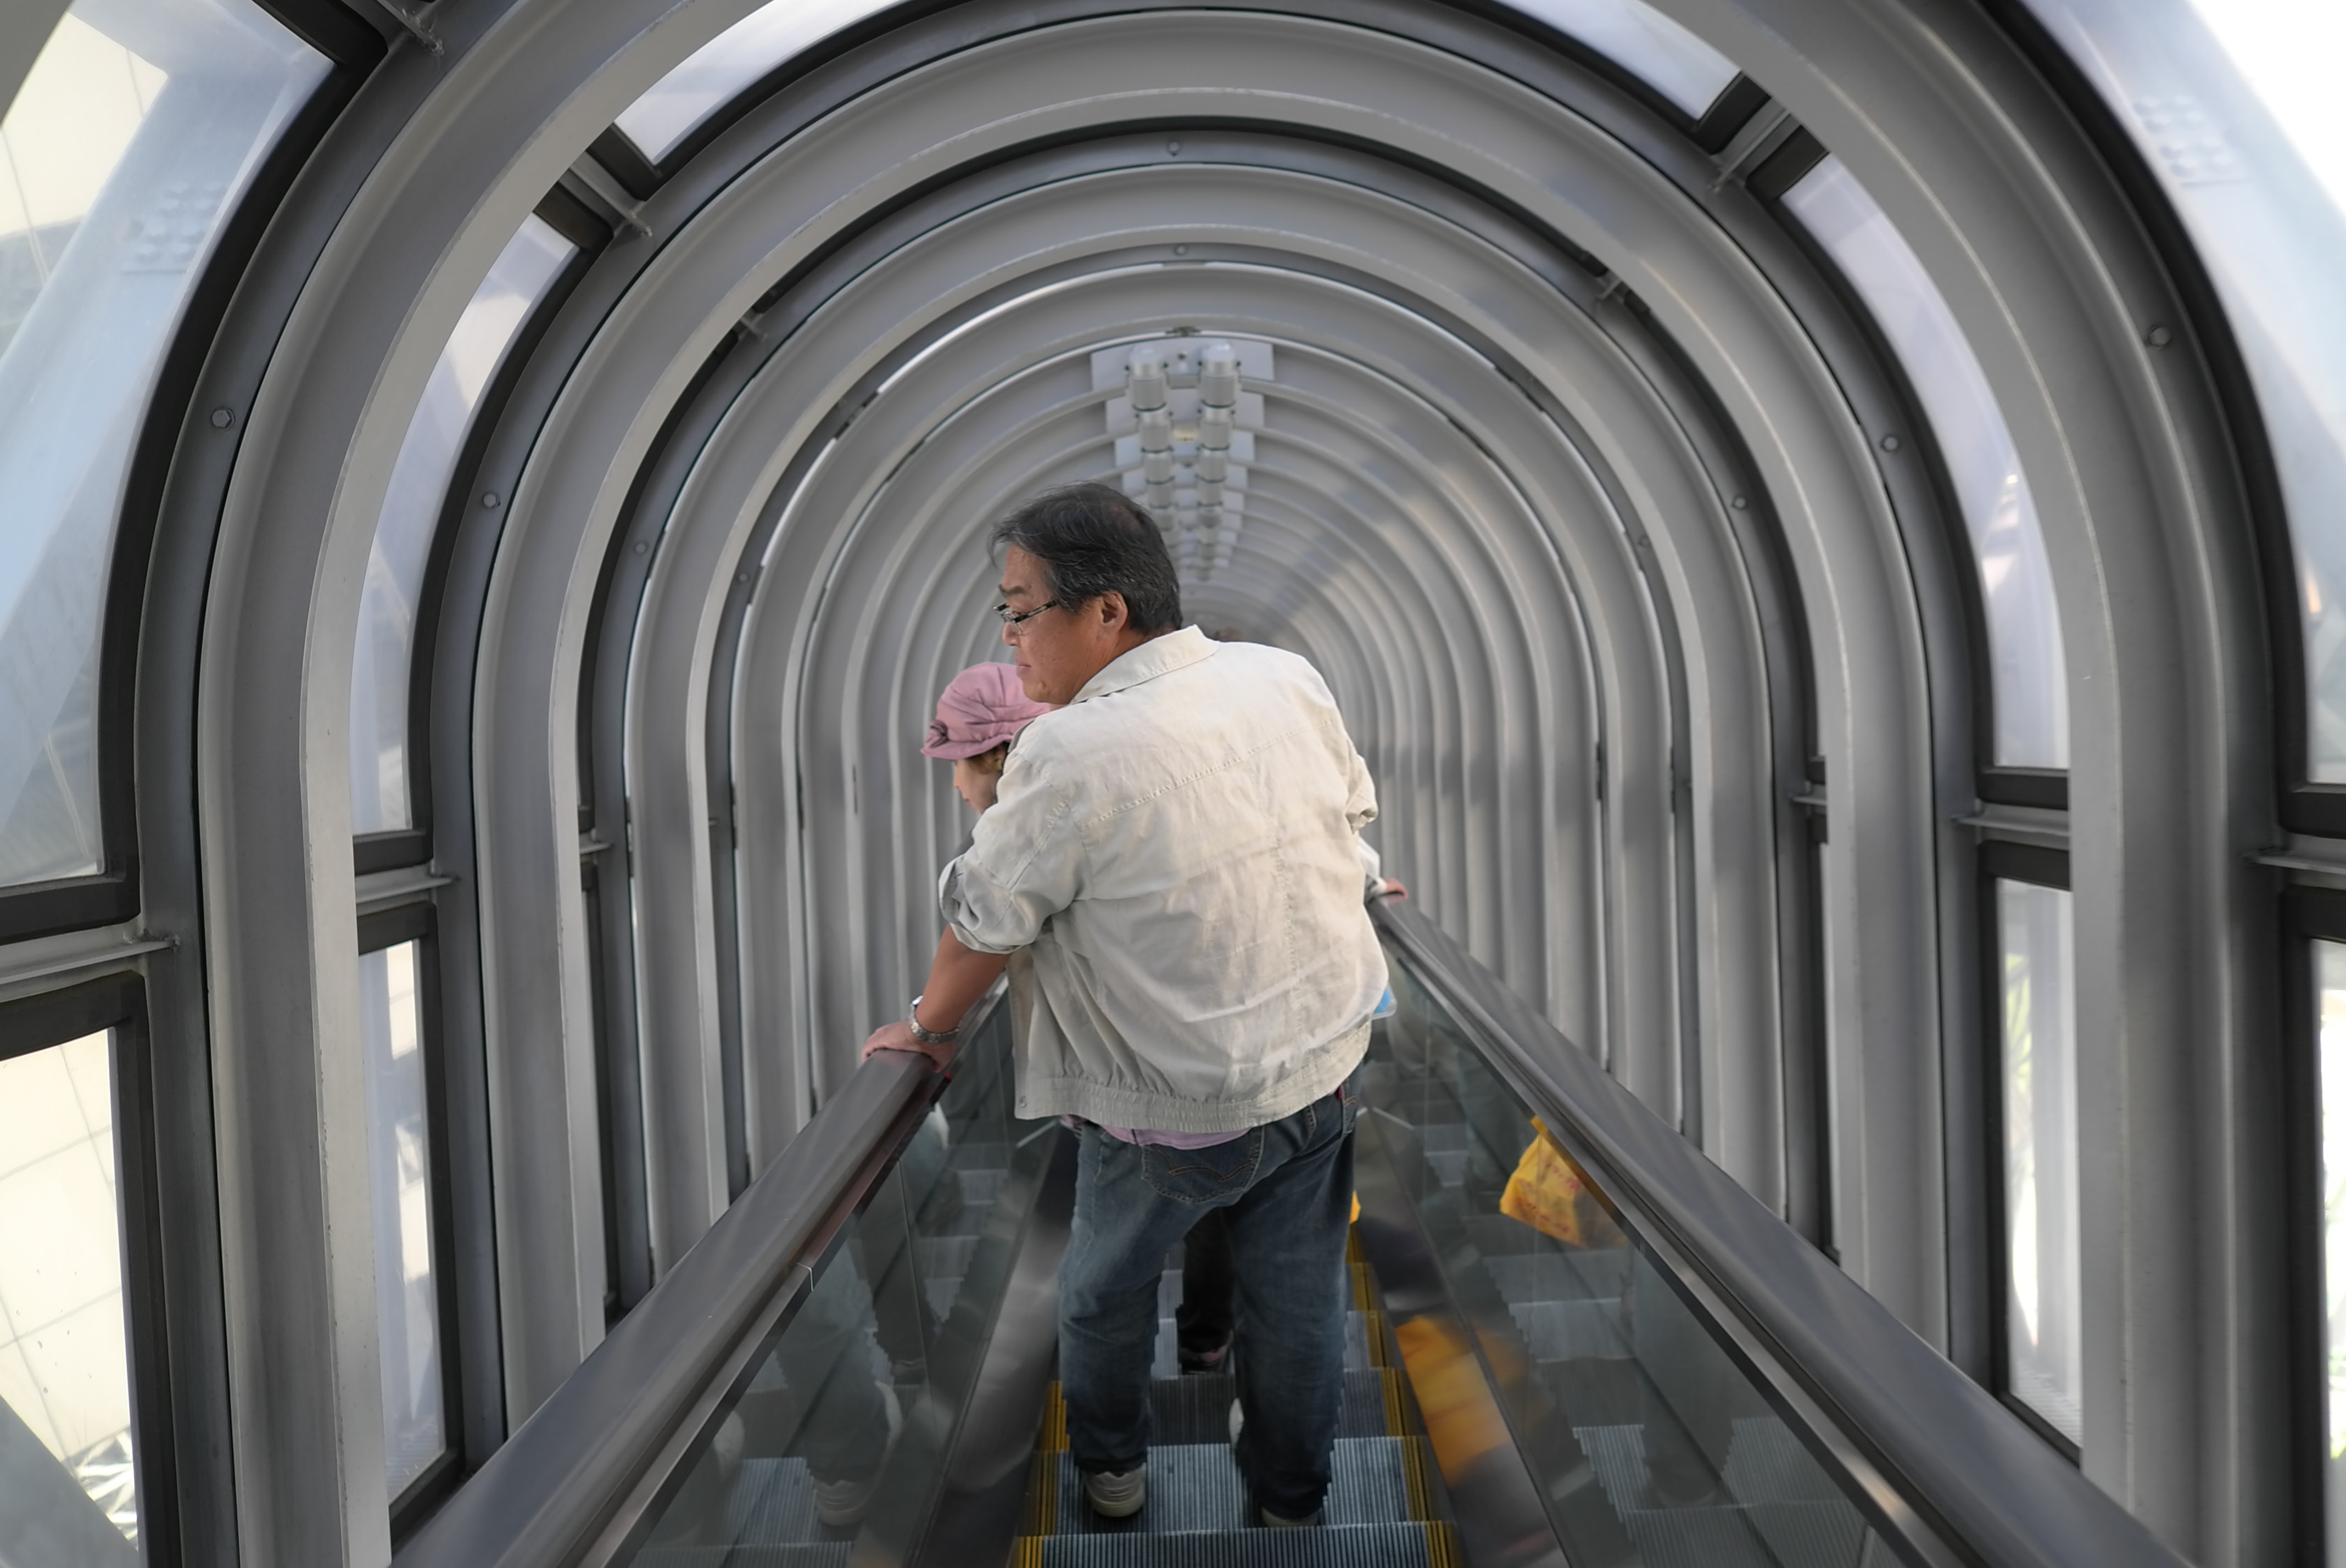 man holding baby riding escalator